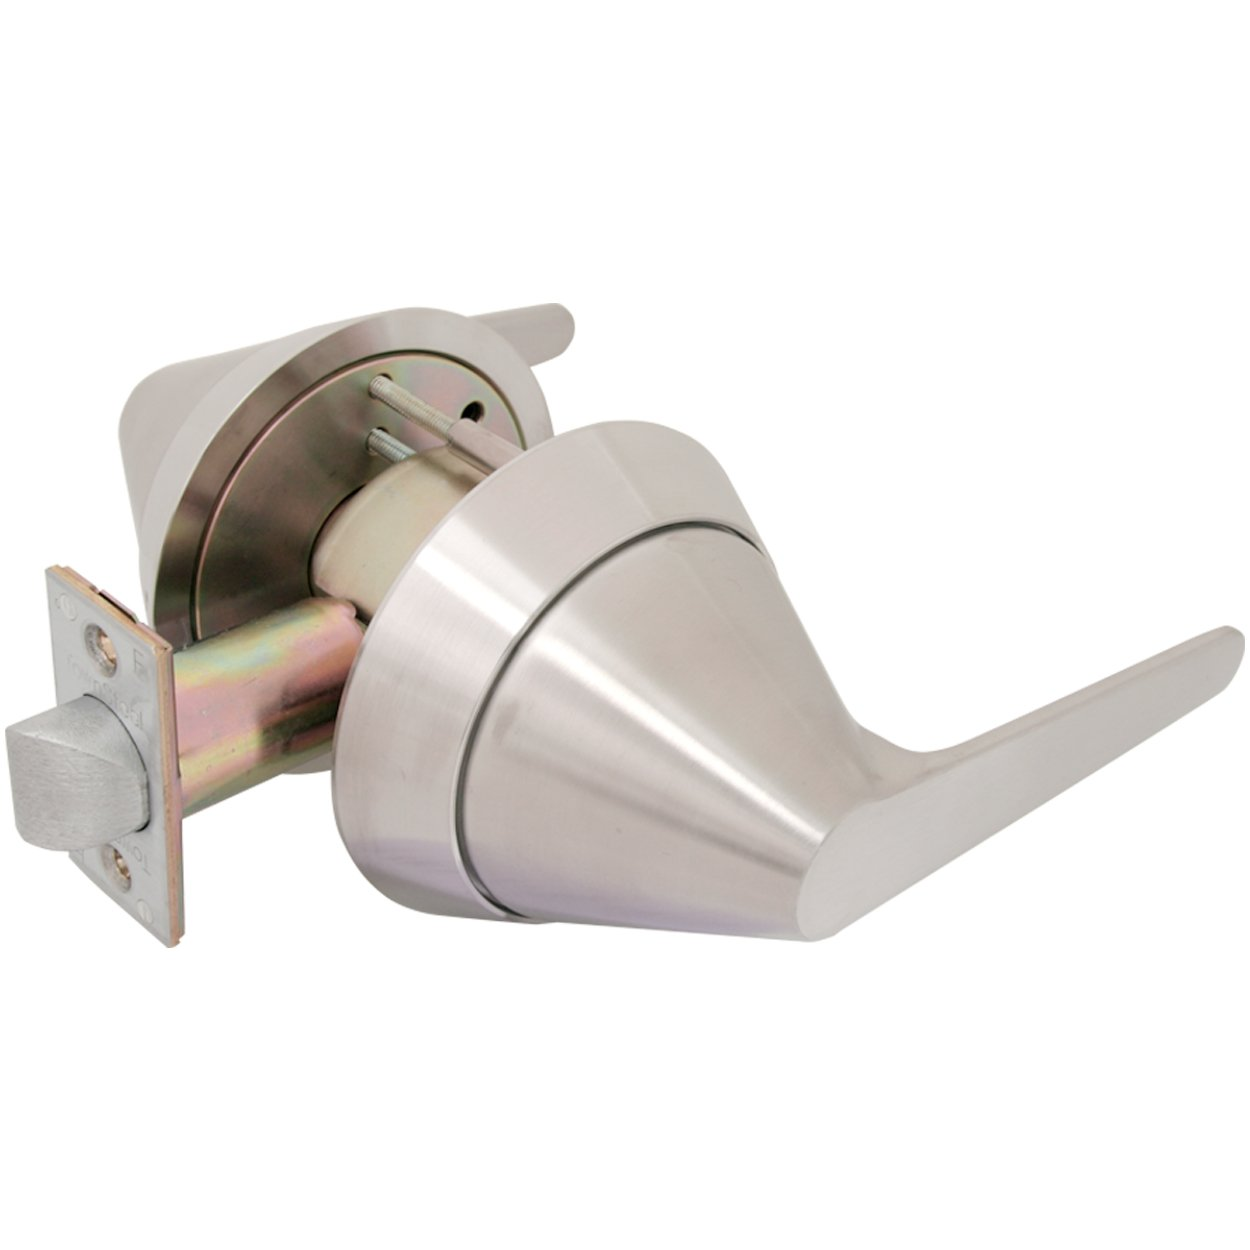 TownSteel TRX-L-75 Cylindrical Lock with Ligature Resistant Lever Trim, Grade 1, Passage Function, Non-Handed, Satin Stainless Steel